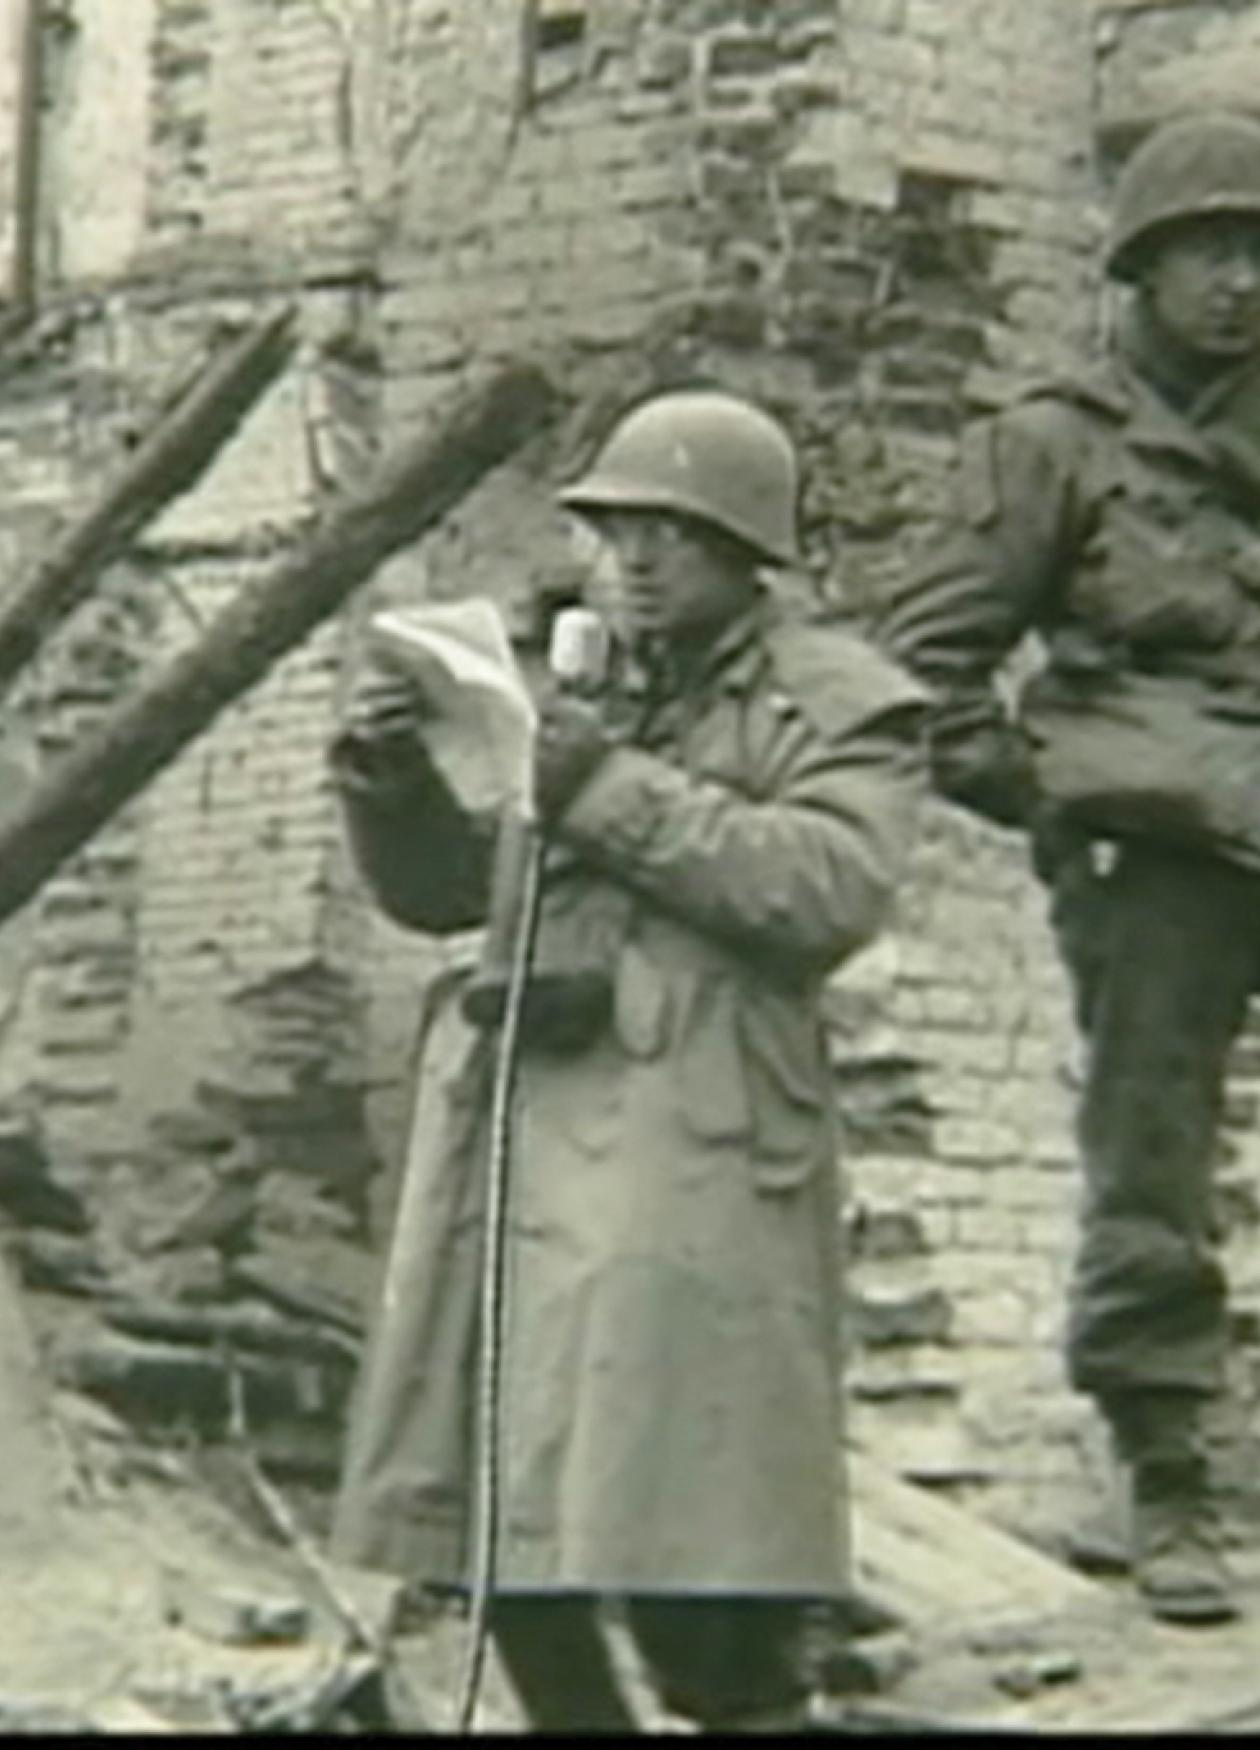 Three armed and uniformed soldiers watch Plambeck, also uniformed, speak into a microphone while reading off of a paper, in the ruins of a stone building